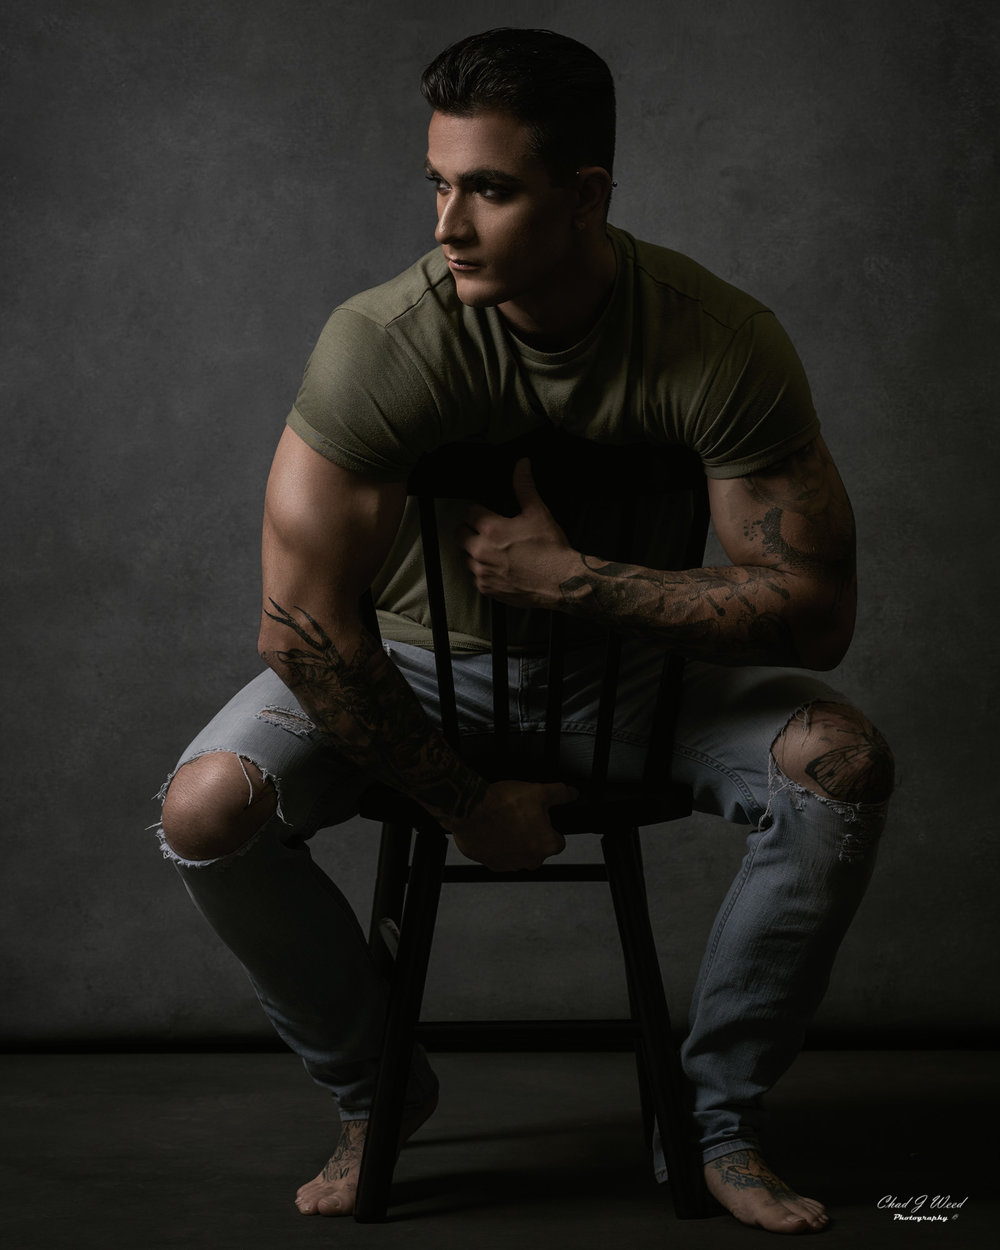 Arizona Glamour Portrait Photographer Chad Weed with Glam Fitness Model Isaac